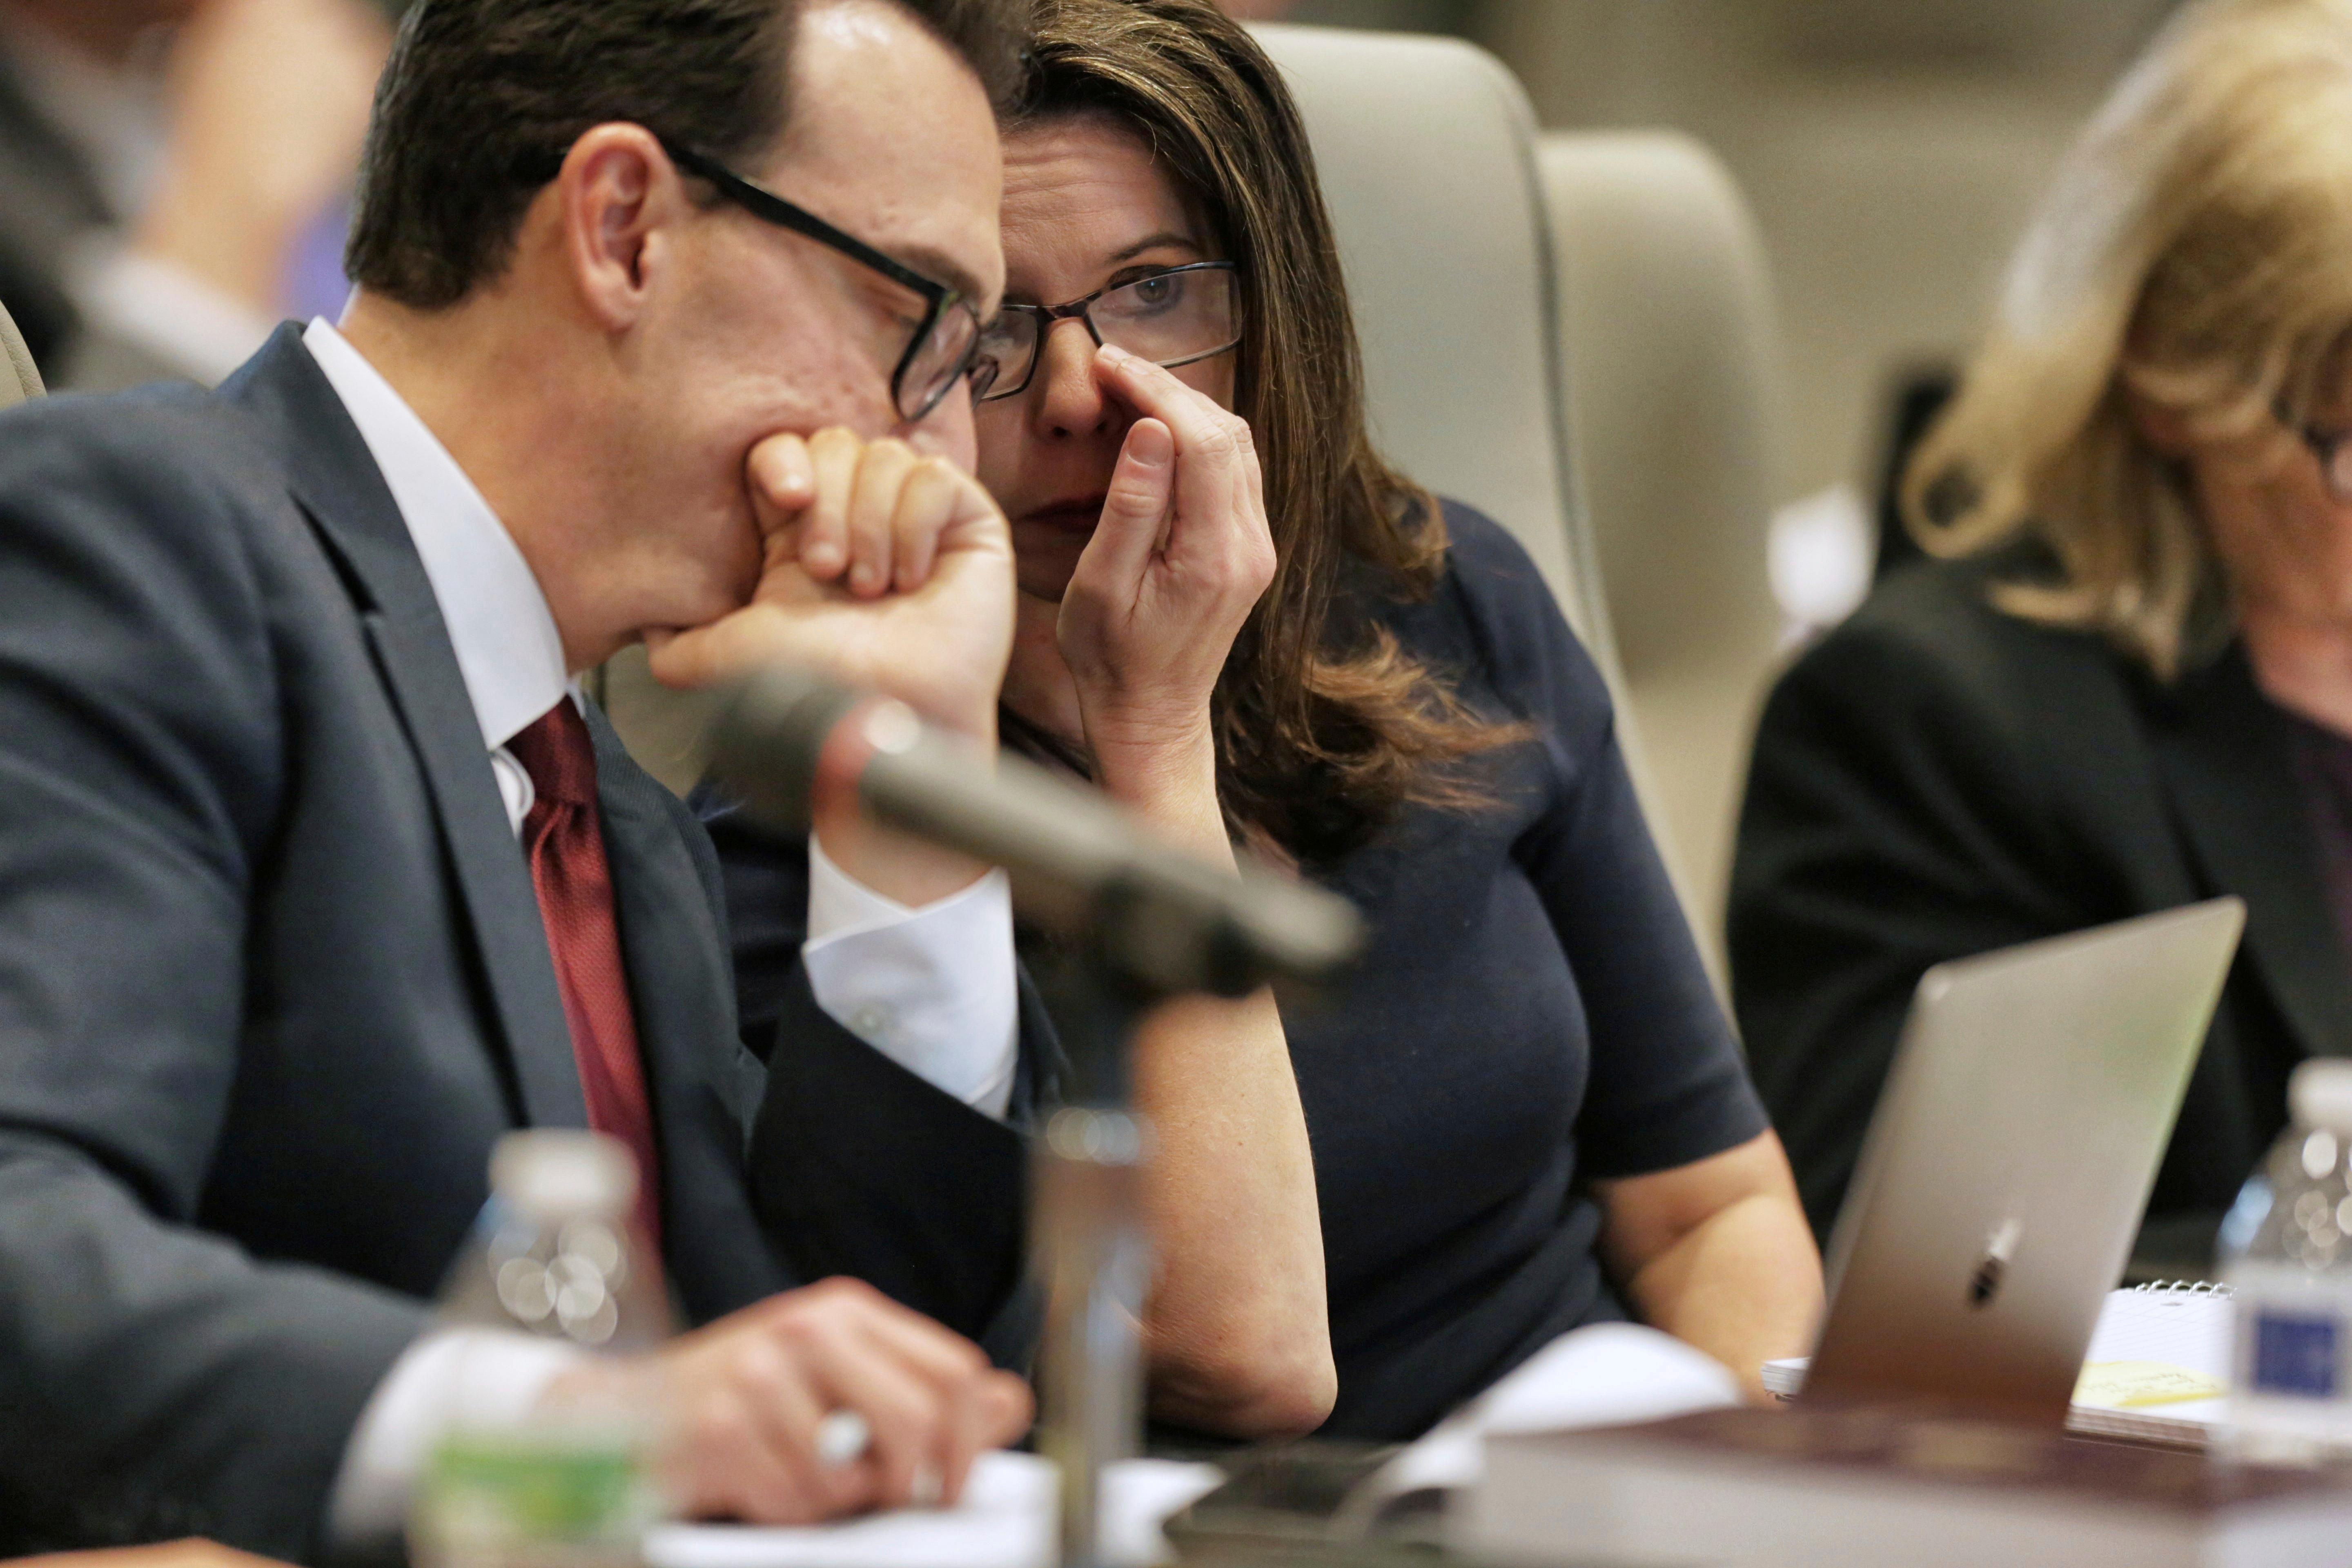 Executive Director of the Board of Elections Kim Strach, right, talks to general counsel Josh Lawson during a public evidentiary hearing on the 9th Congressional District investigation at the North Carolina State Bar in Raleigh, N.C., Monday, Feb. 18, 2019. (Juli Leonard/The News & Observer via AP, Pool)